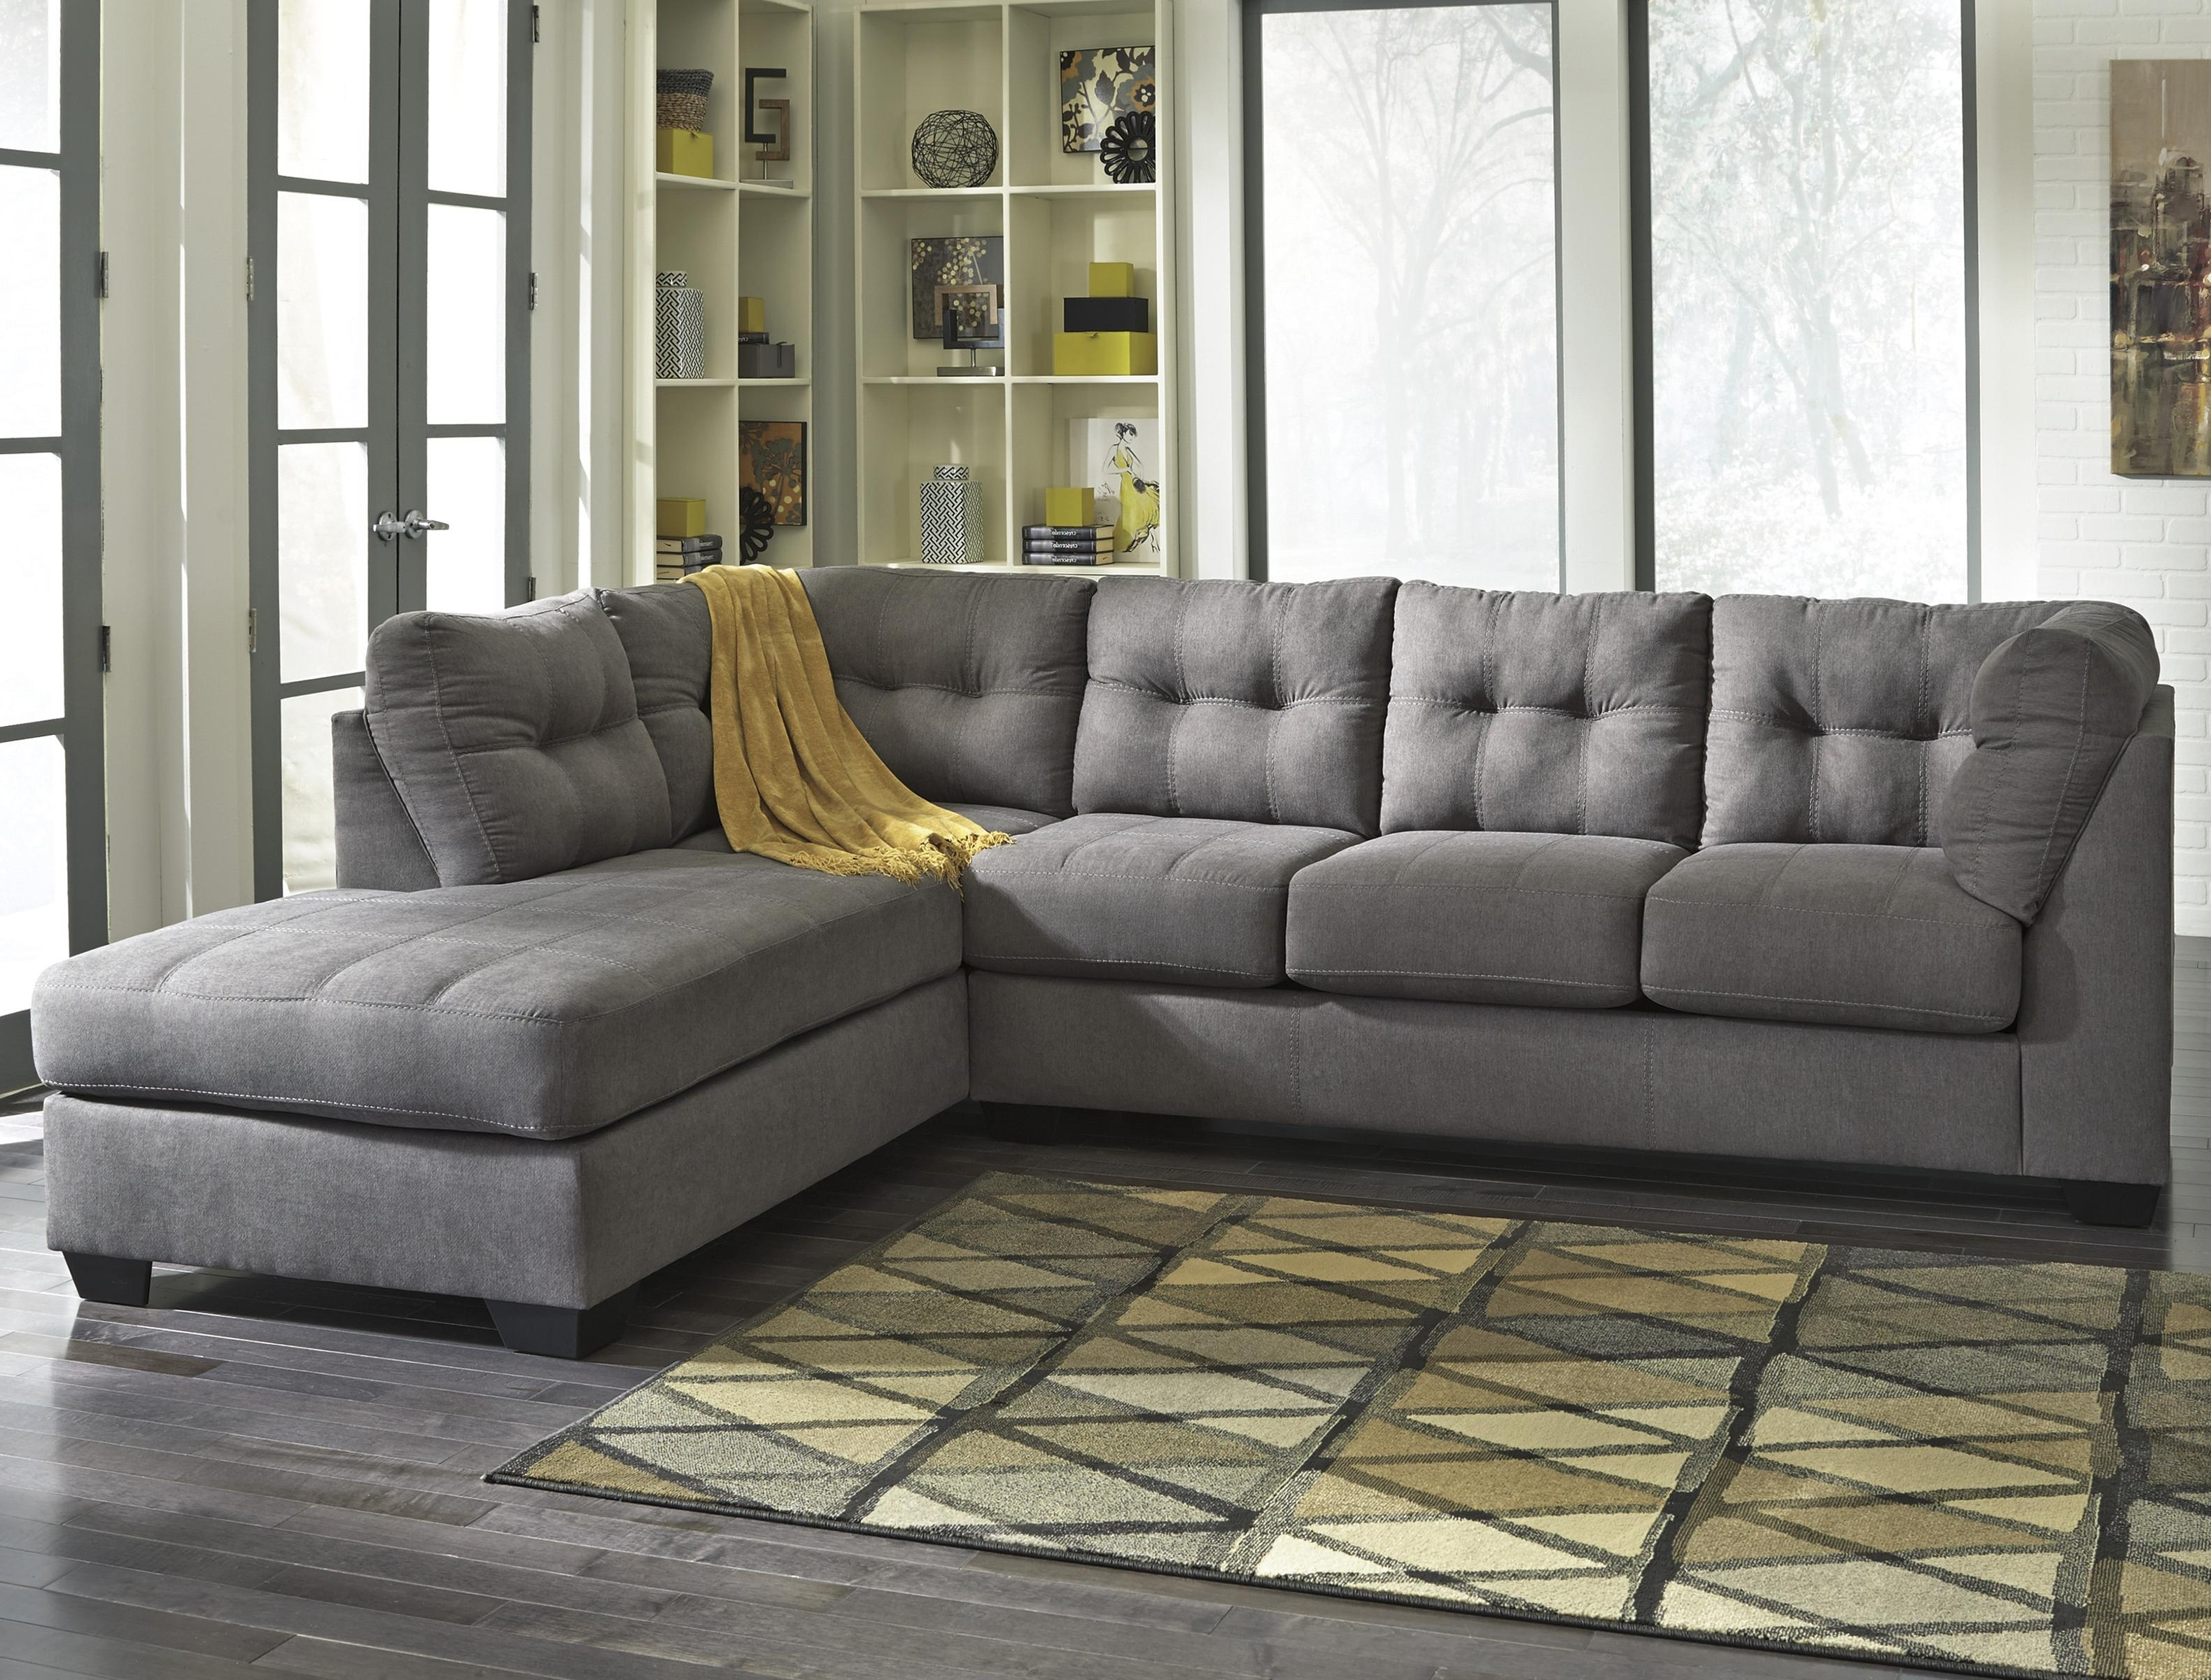 3 Piece Sectional Sleeper Sofas Regarding Most Current 3 Piece Sectional Sleeper Sofa – Hotelsbacau (Gallery 4 of 20)